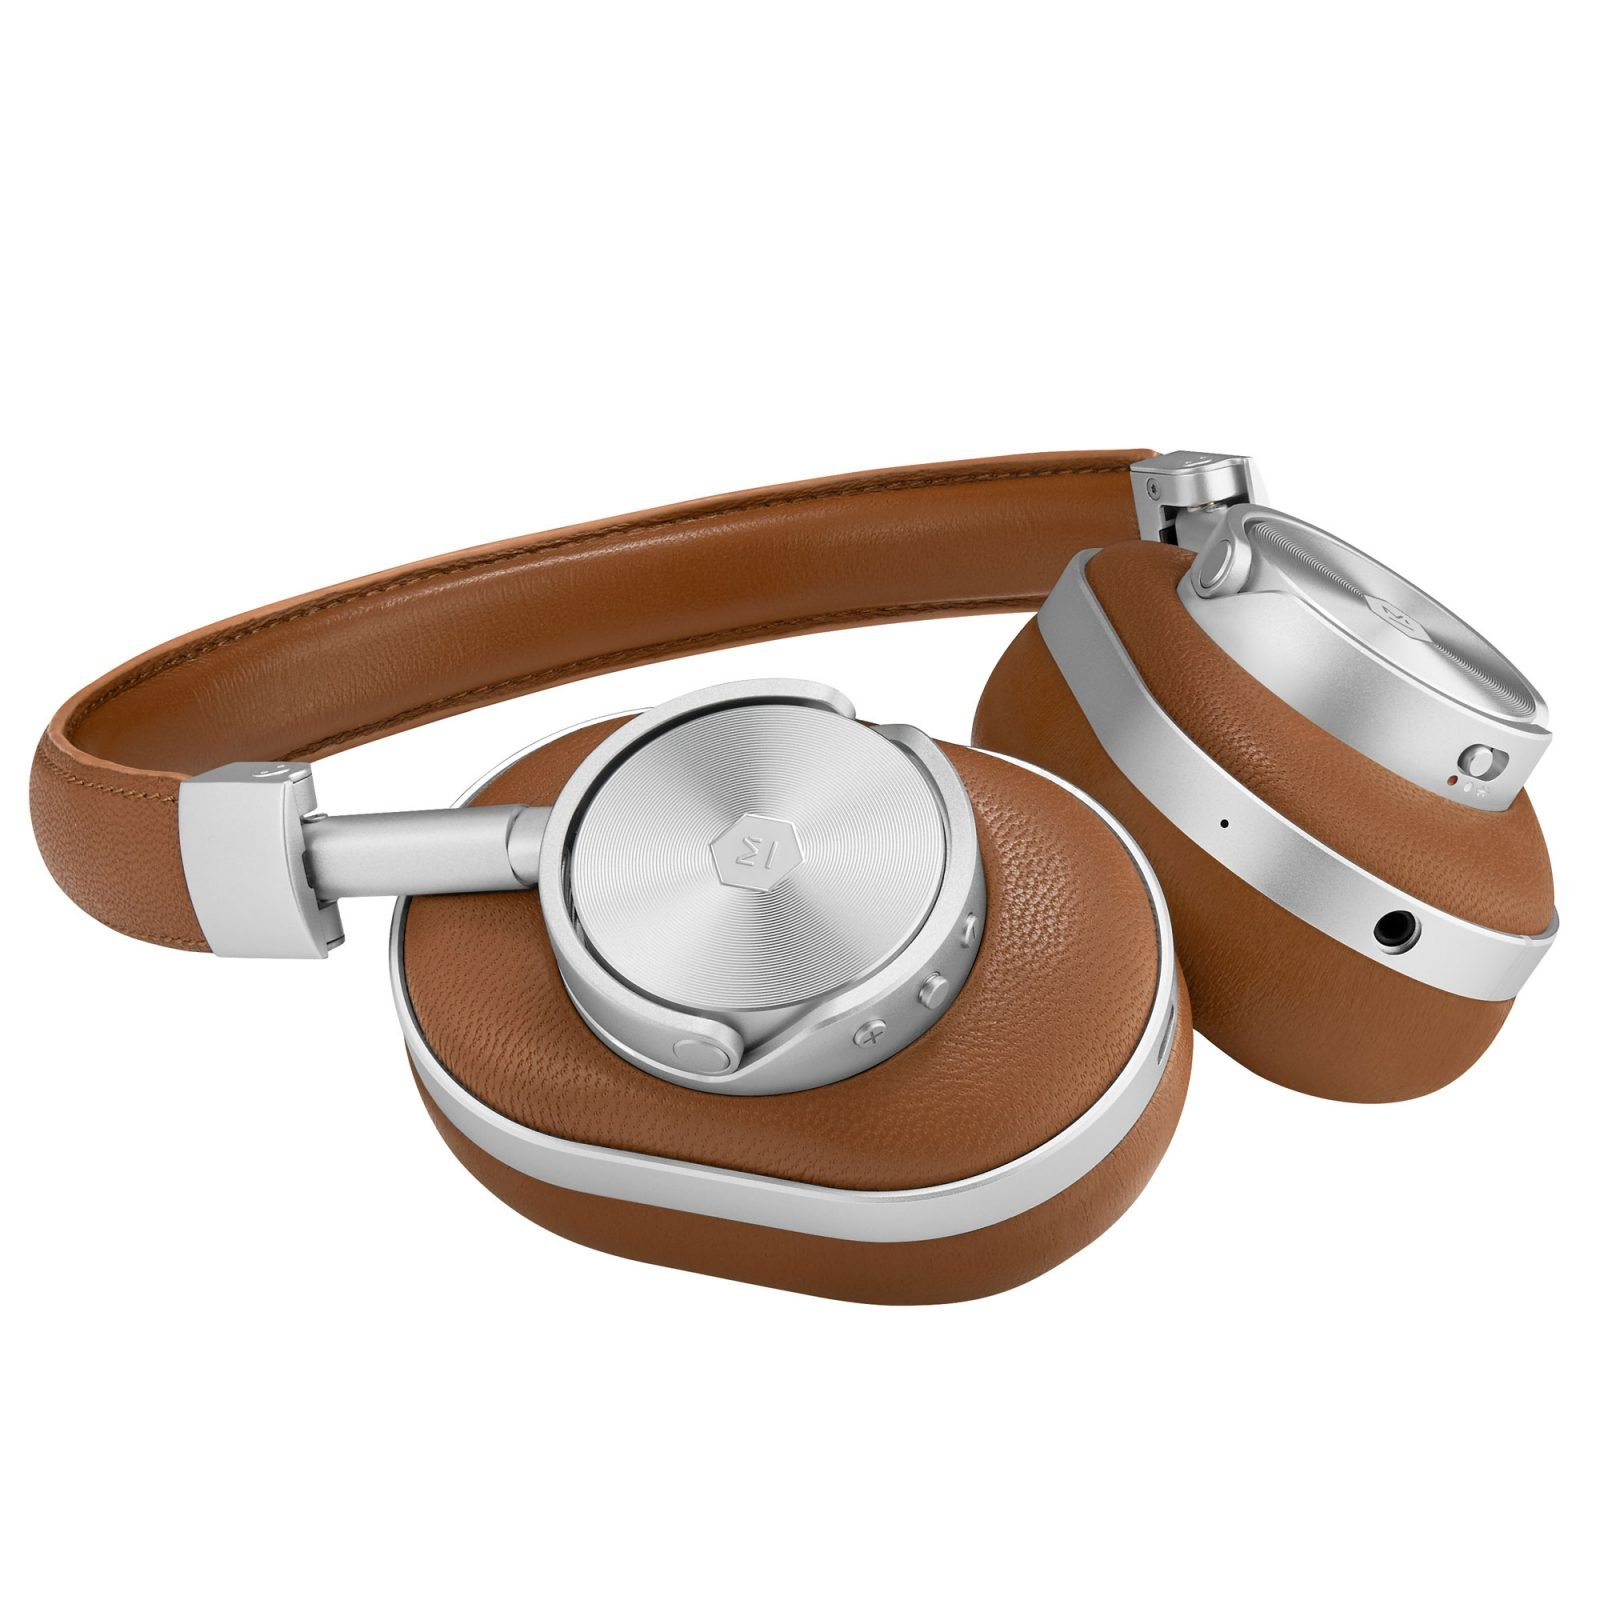 mw60-wireless-over-ear-headphones-brown-silver-7